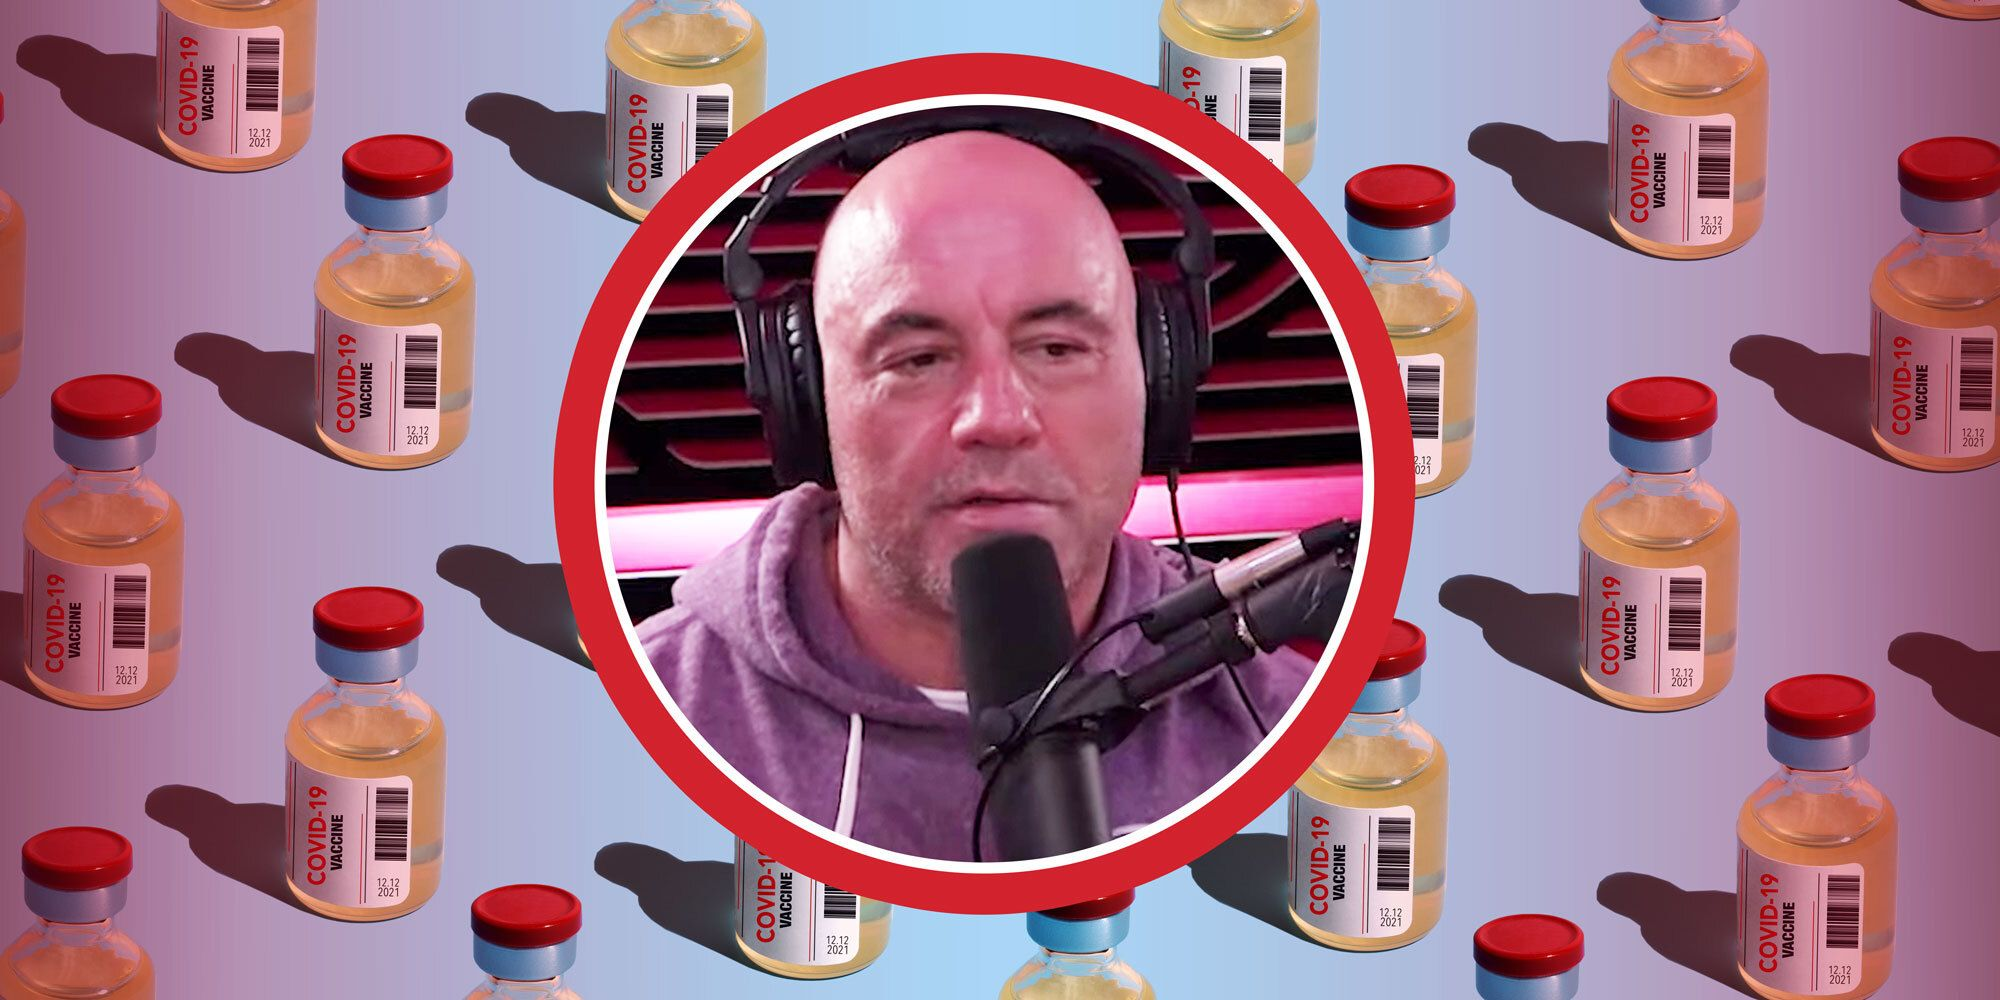 Joe Rogan Is Dead Wrong About the COVID Vaccine